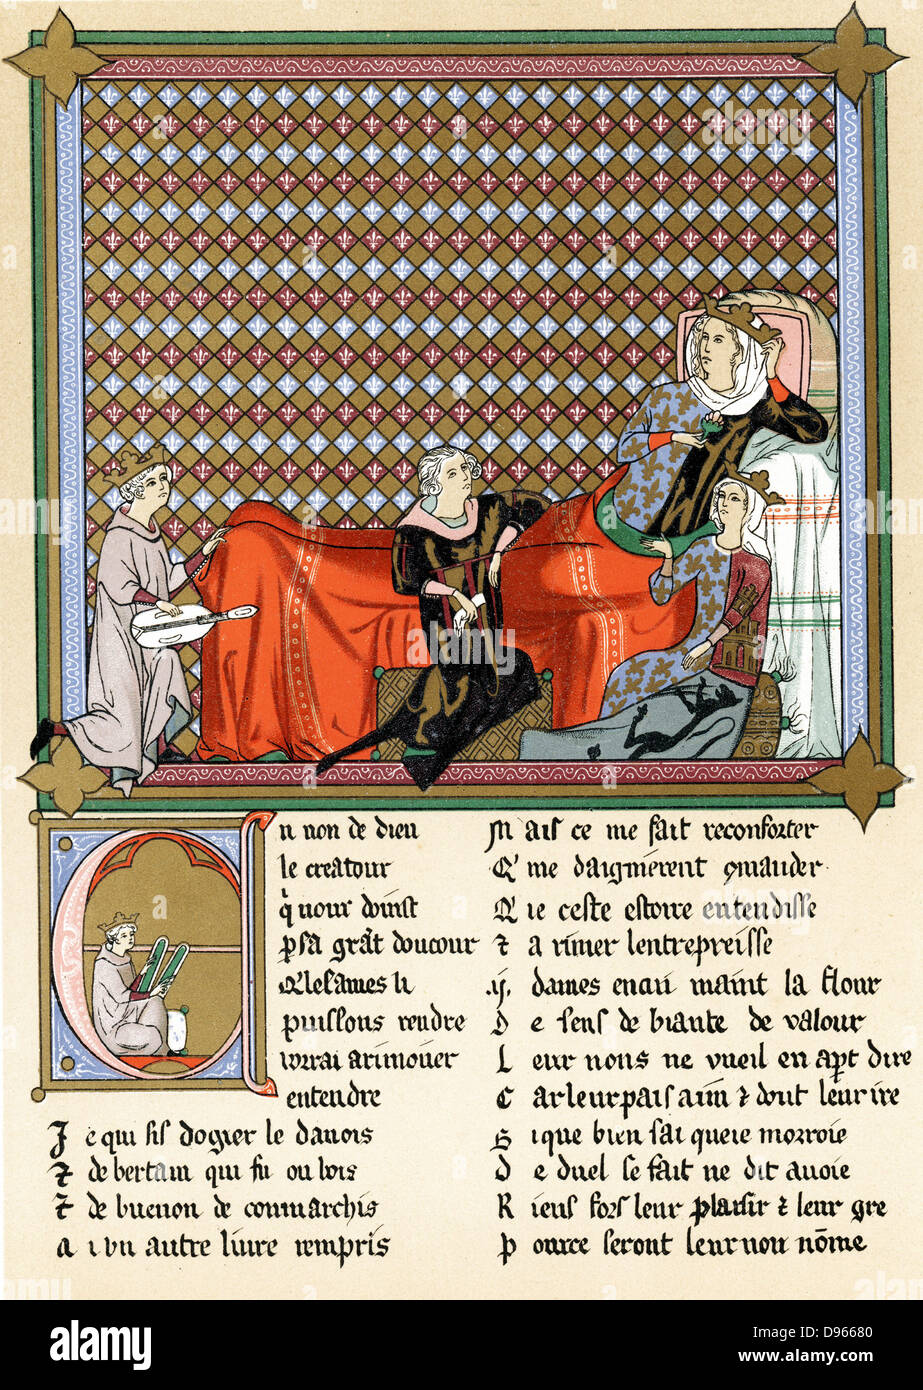 Adenet le Roi (c1240-c1300) 'King of the Minstrels' French poet and musician, reciting 'Roman de Cleomades' - Stock Image